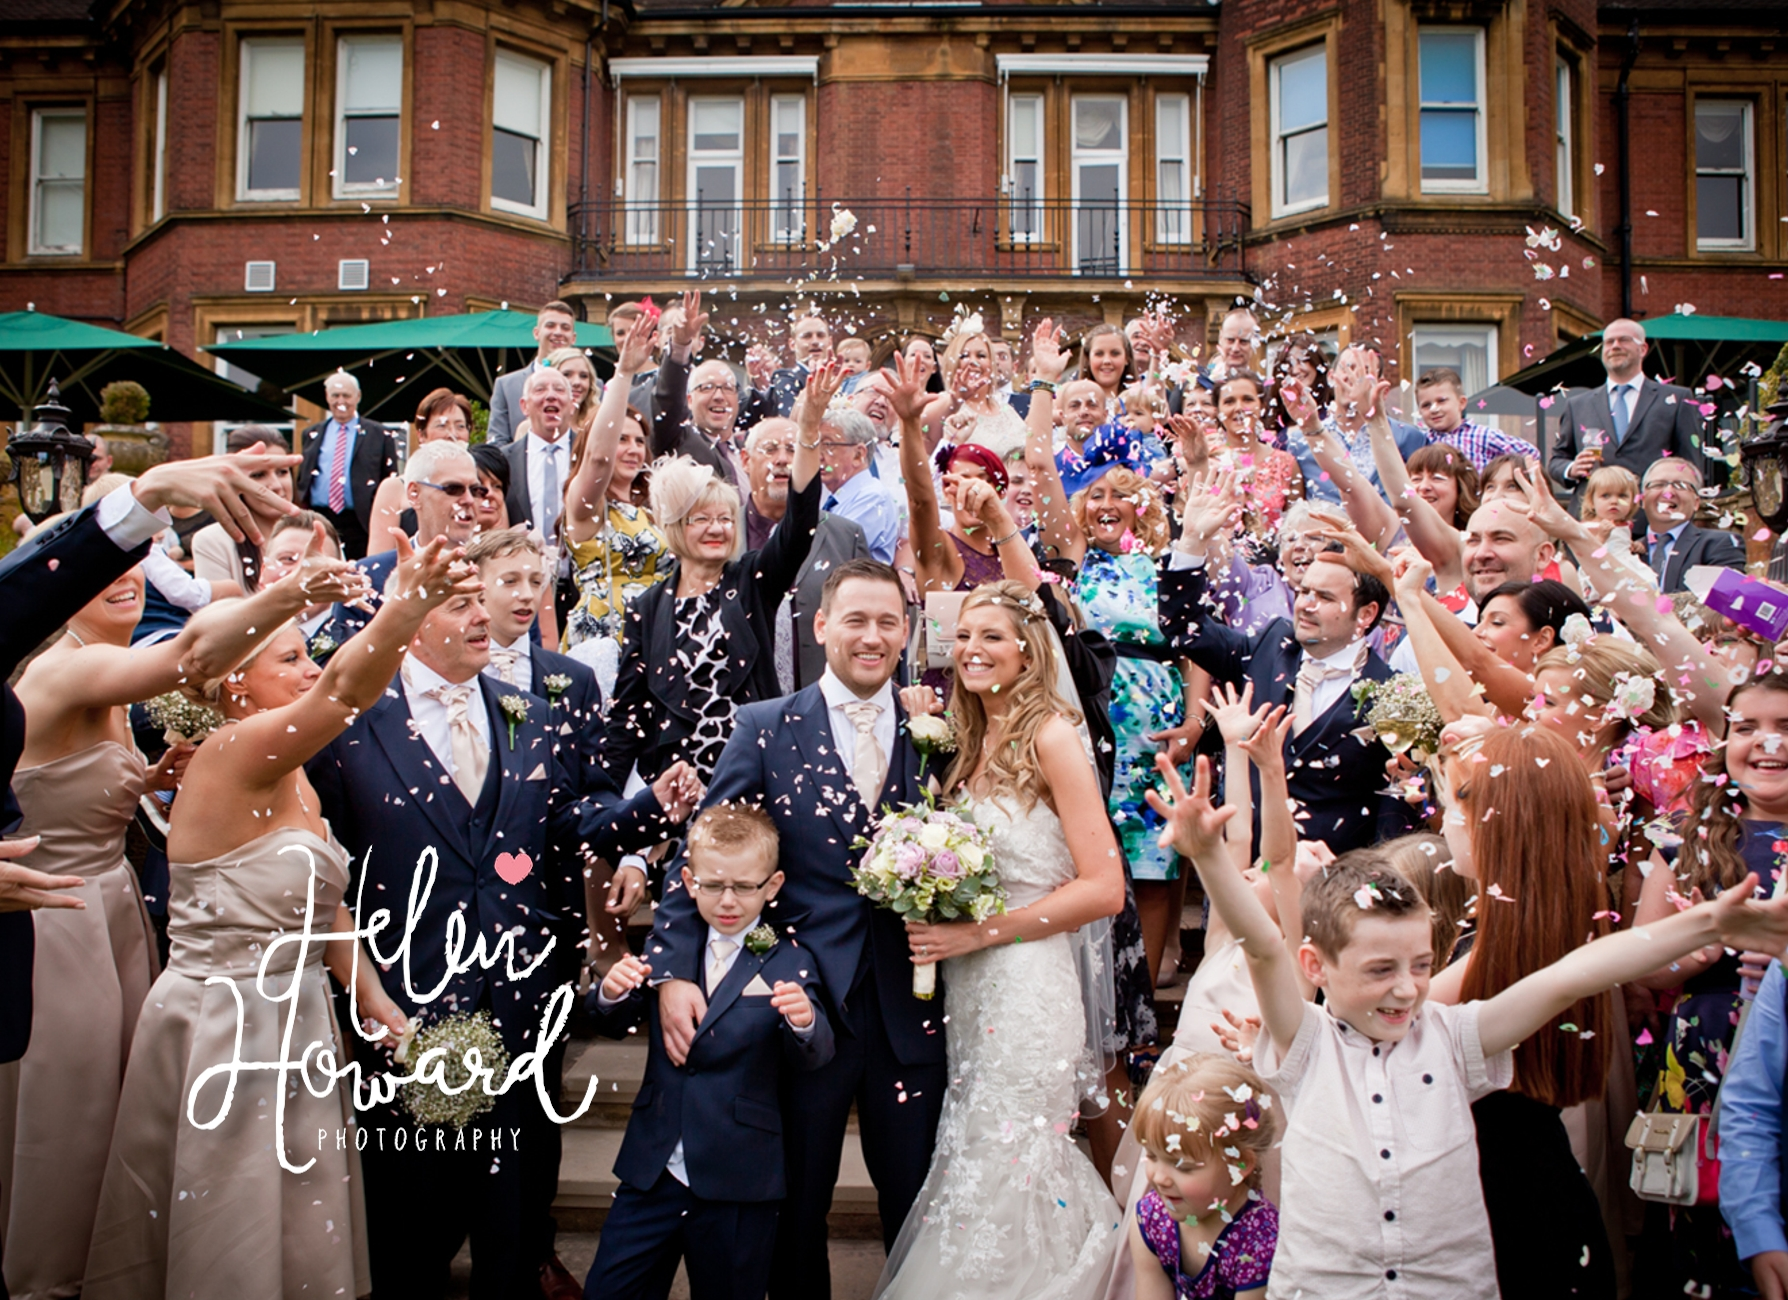 Bride and Groom surrounded by guests throwing confetti